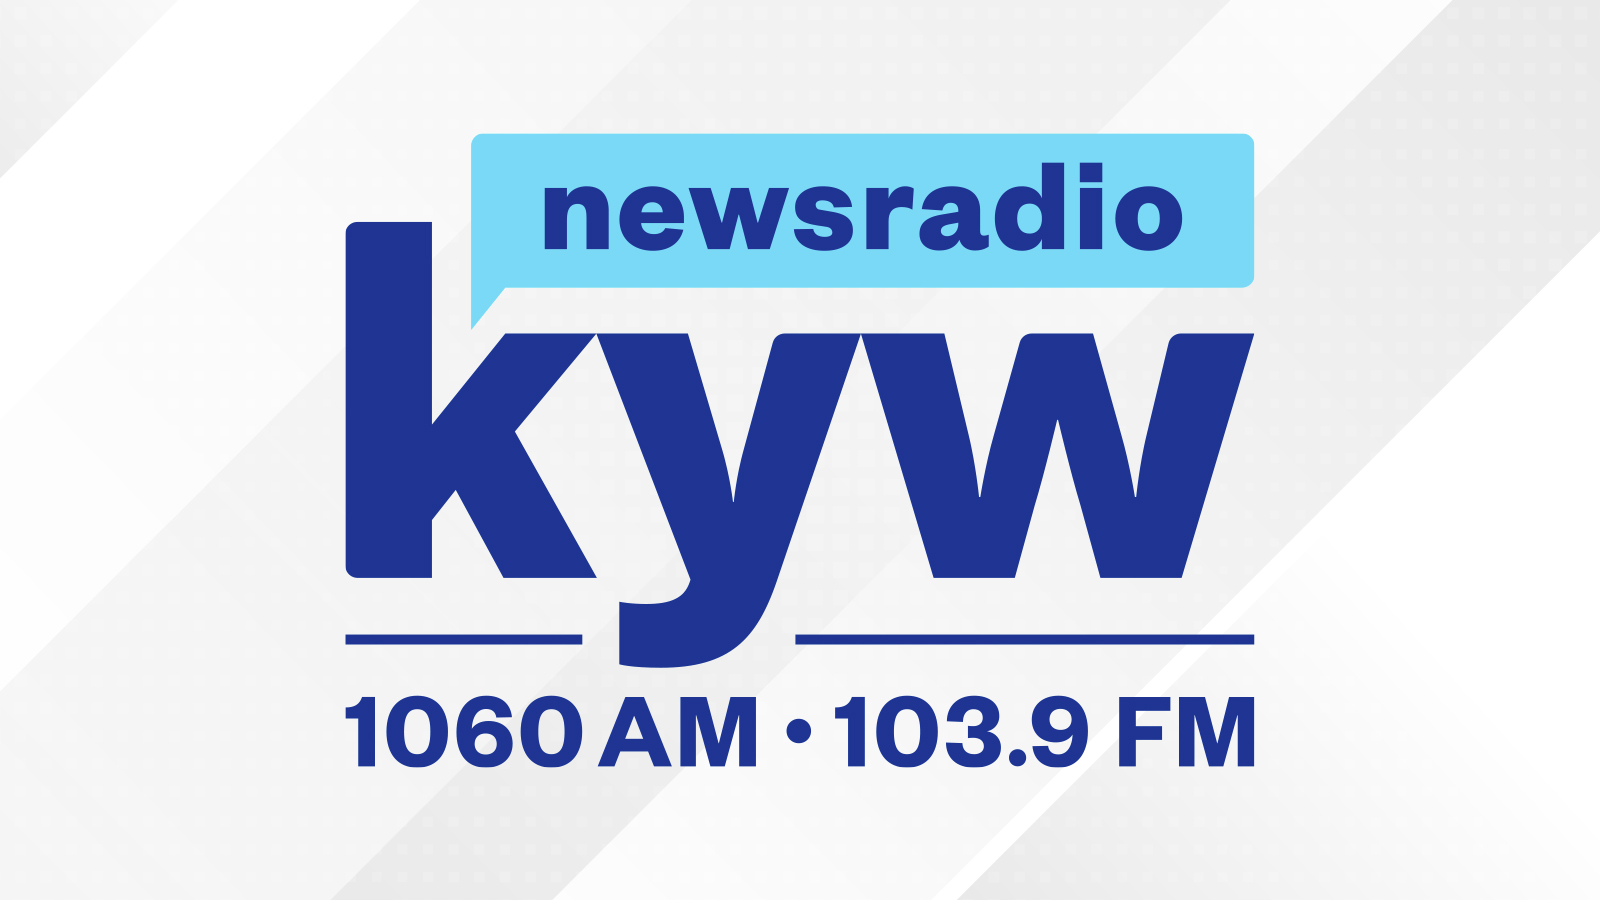 KYW newsradio - 1060AM - 103.9FM